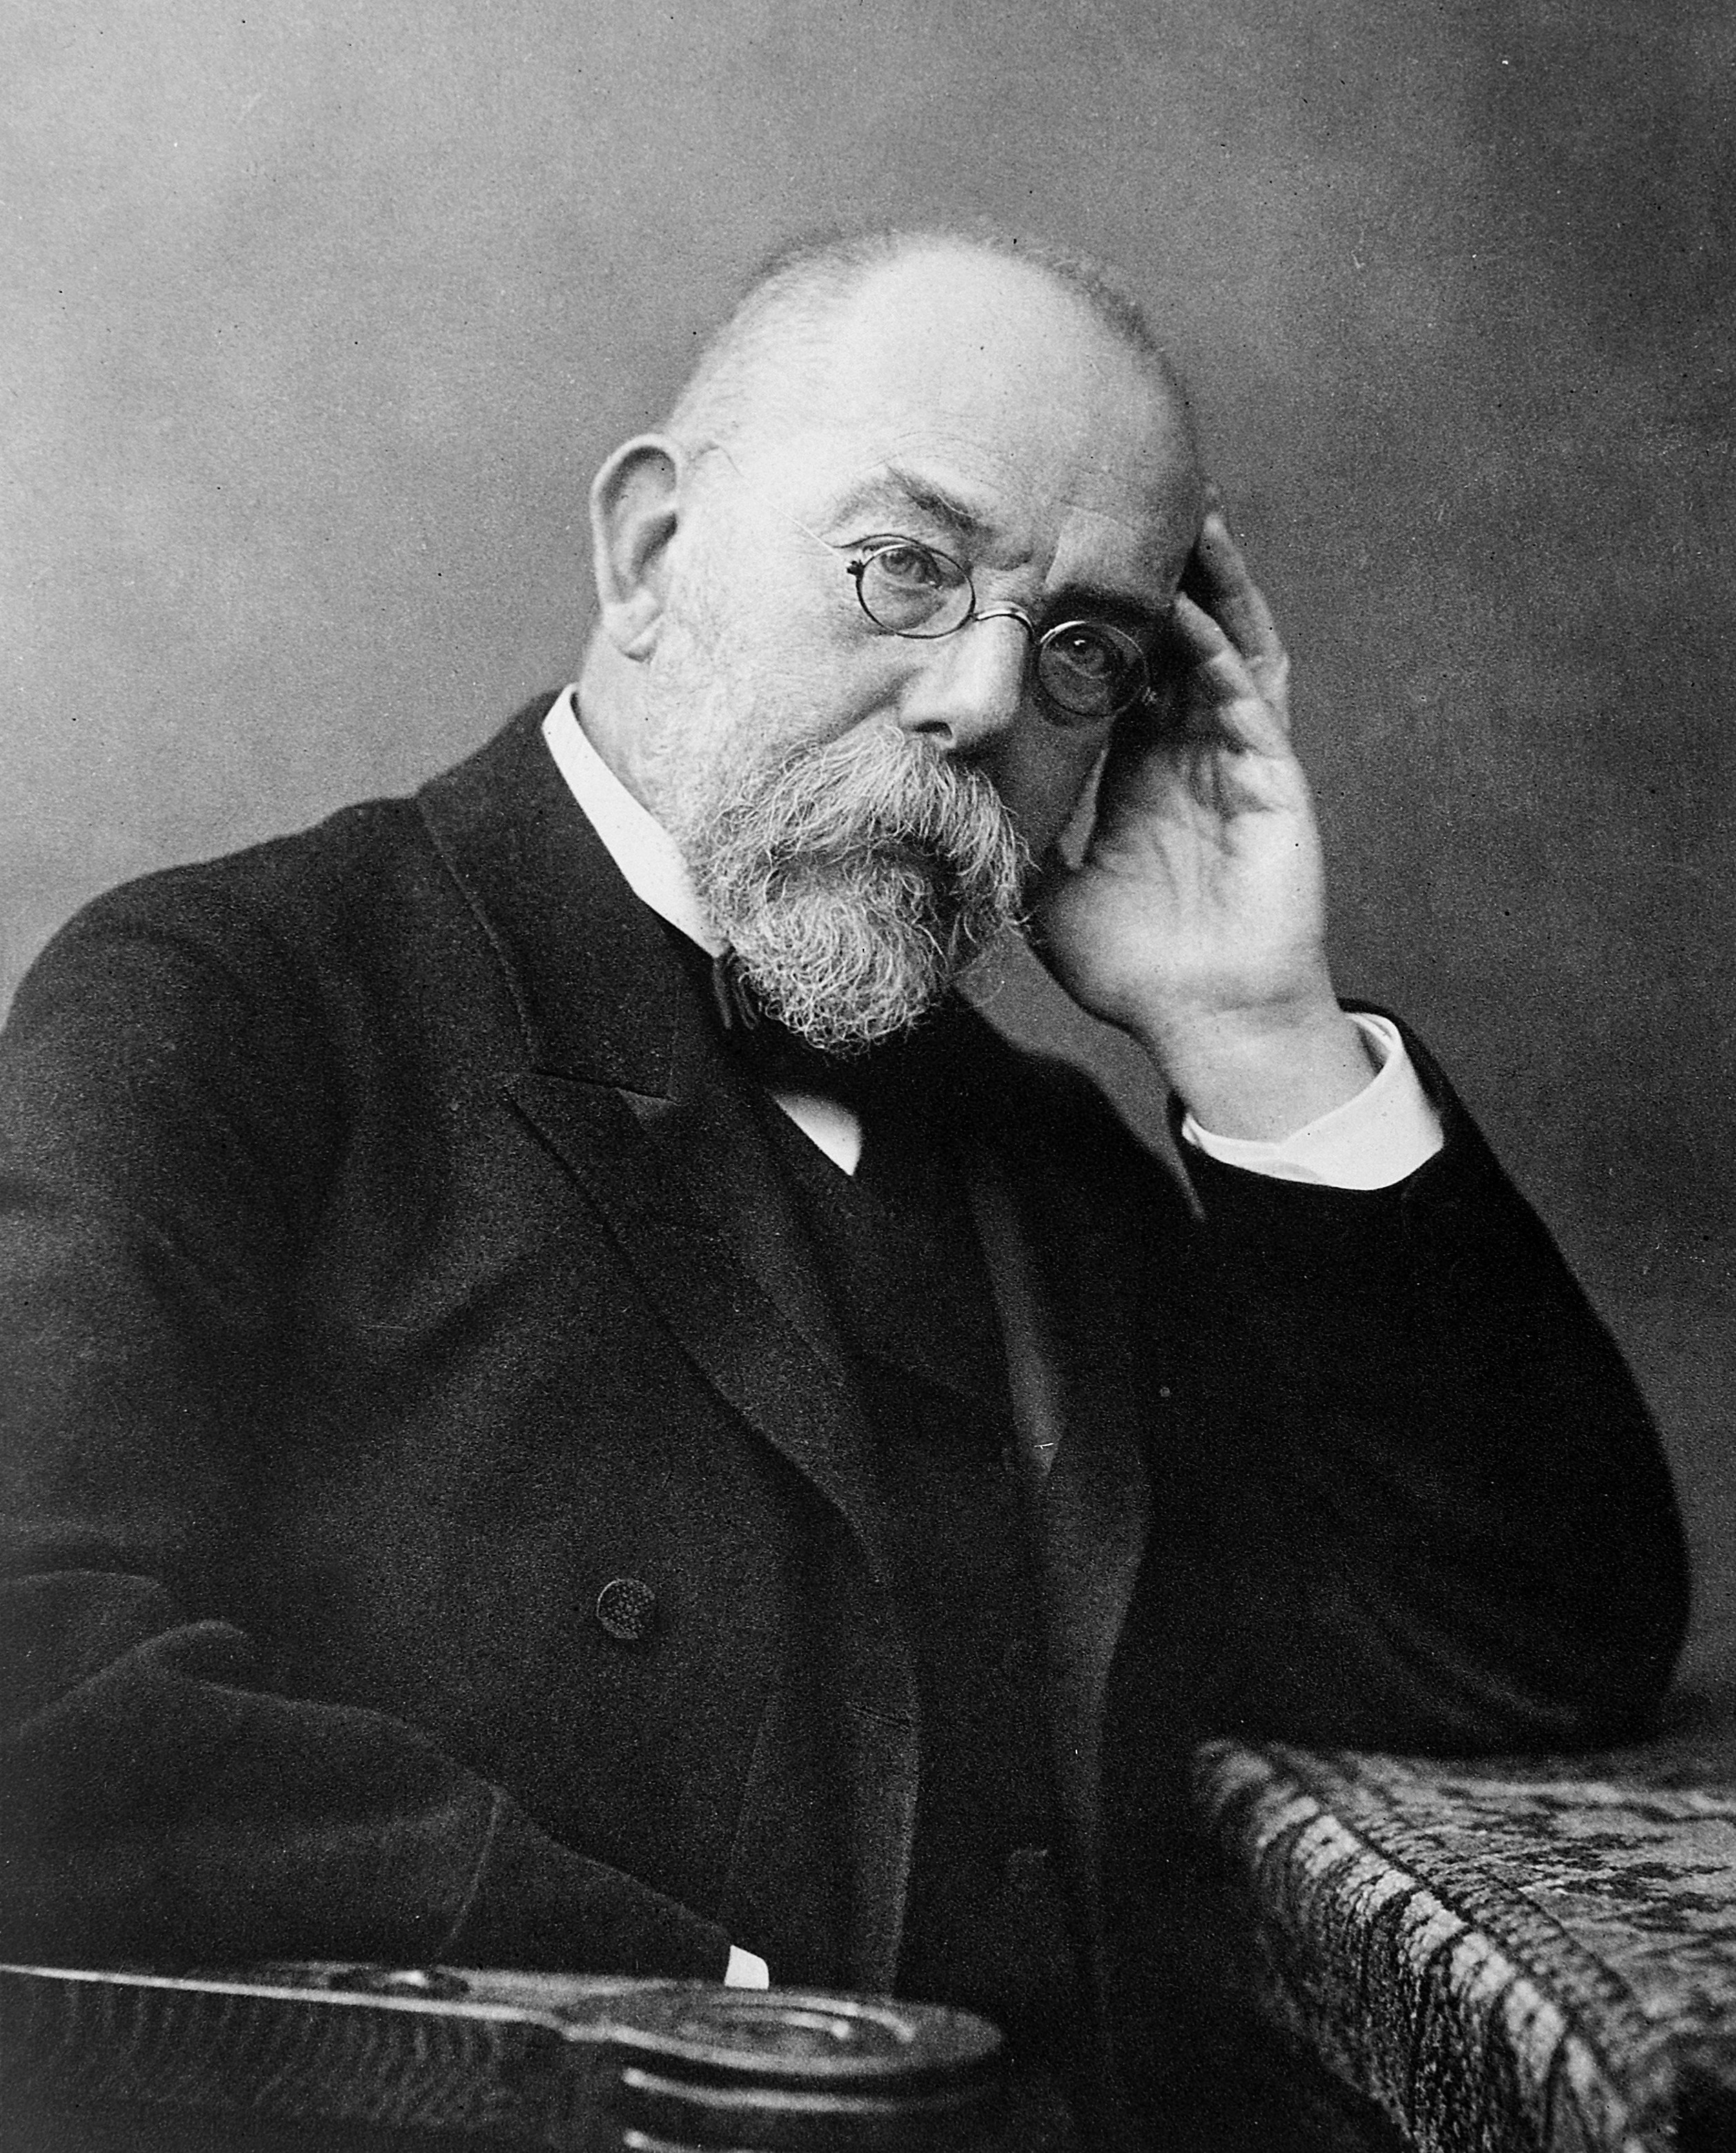 robert koch zitate und spr che. Black Bedroom Furniture Sets. Home Design Ideas